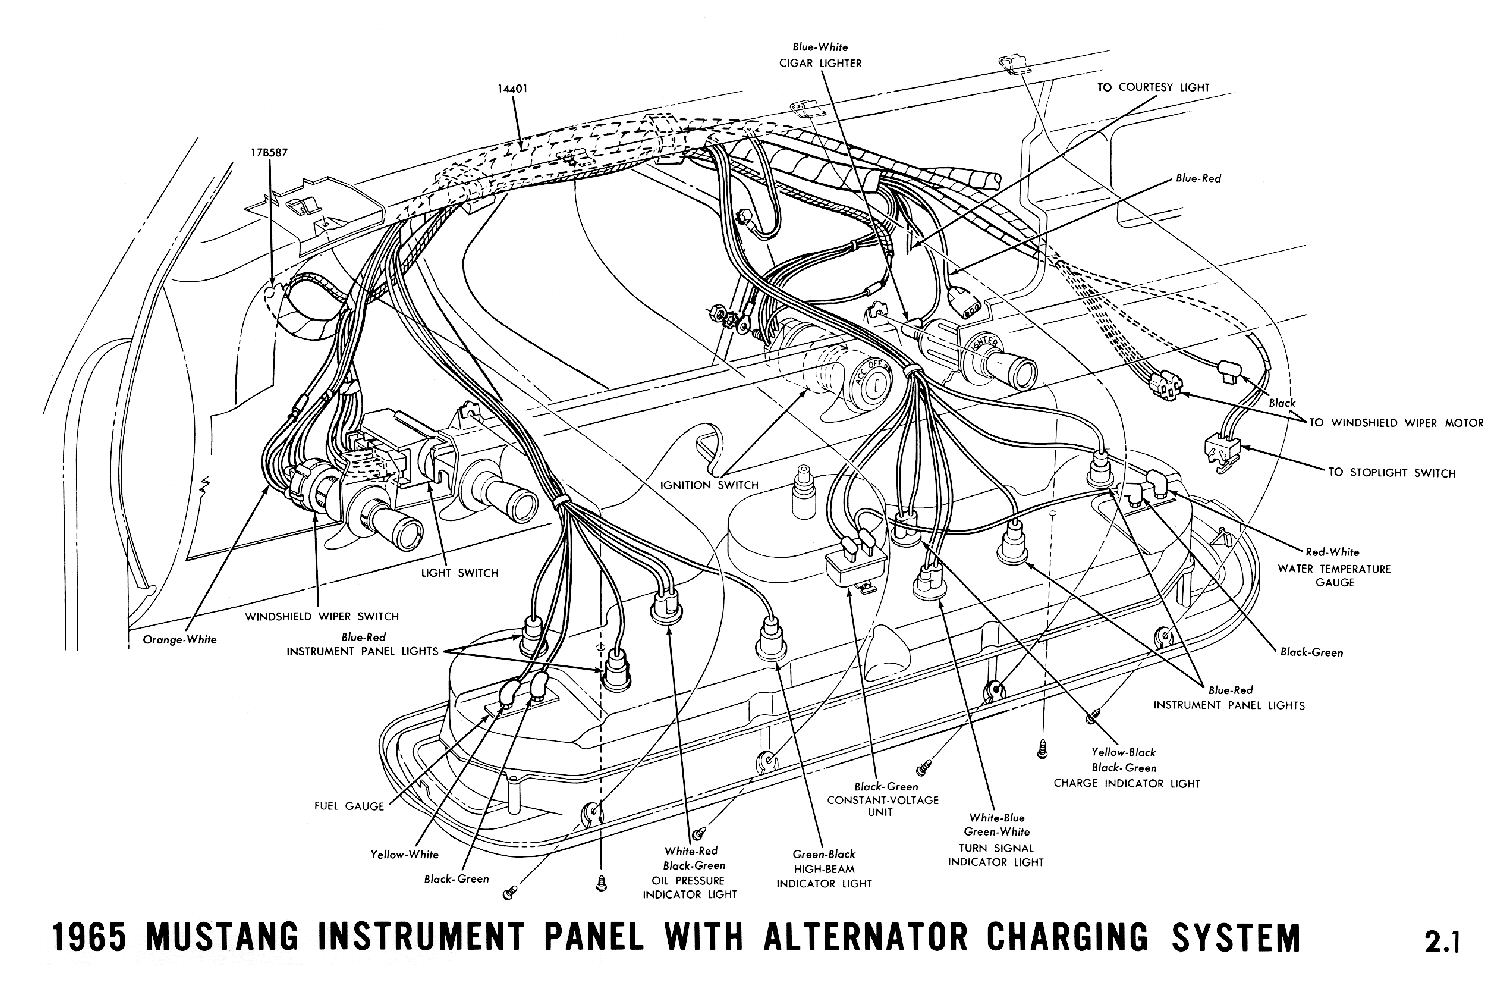 1965a 1965 mustang wiring diagrams average joe restoration 1964 ford falcon wiring diagram at fashall.co